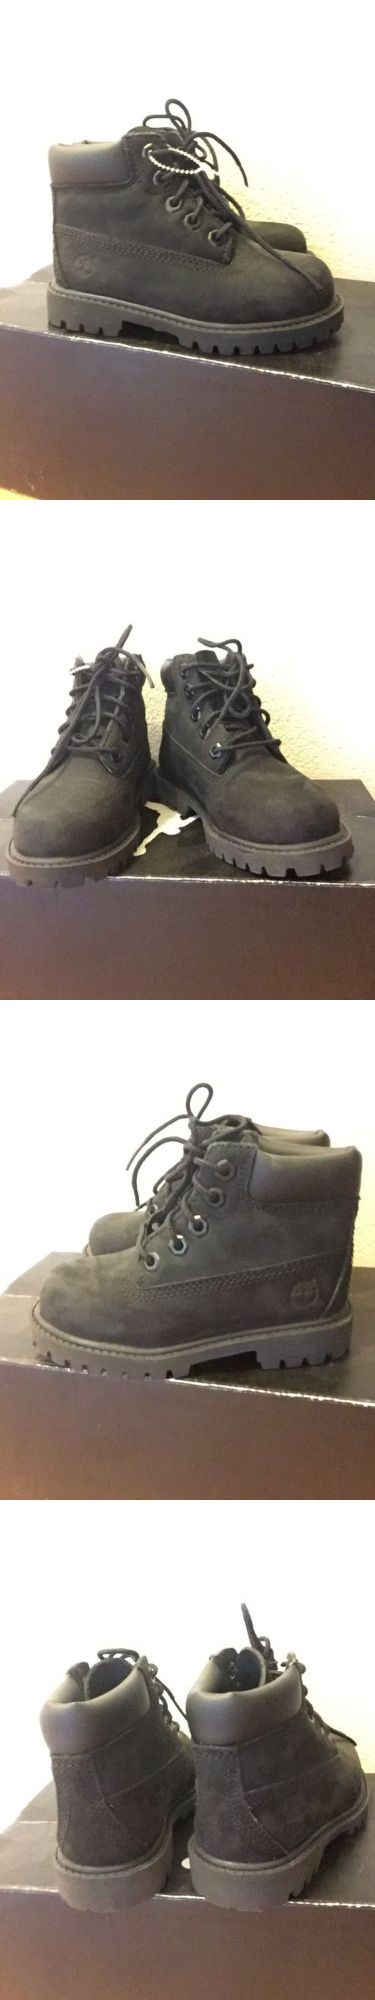 Baby Shoes 147285: Kids Toddler Timberland 6 Premium Boots Black Medium Width Nubuck 8T -> BUY IT NOW ONLY: $39.99 on eBay!